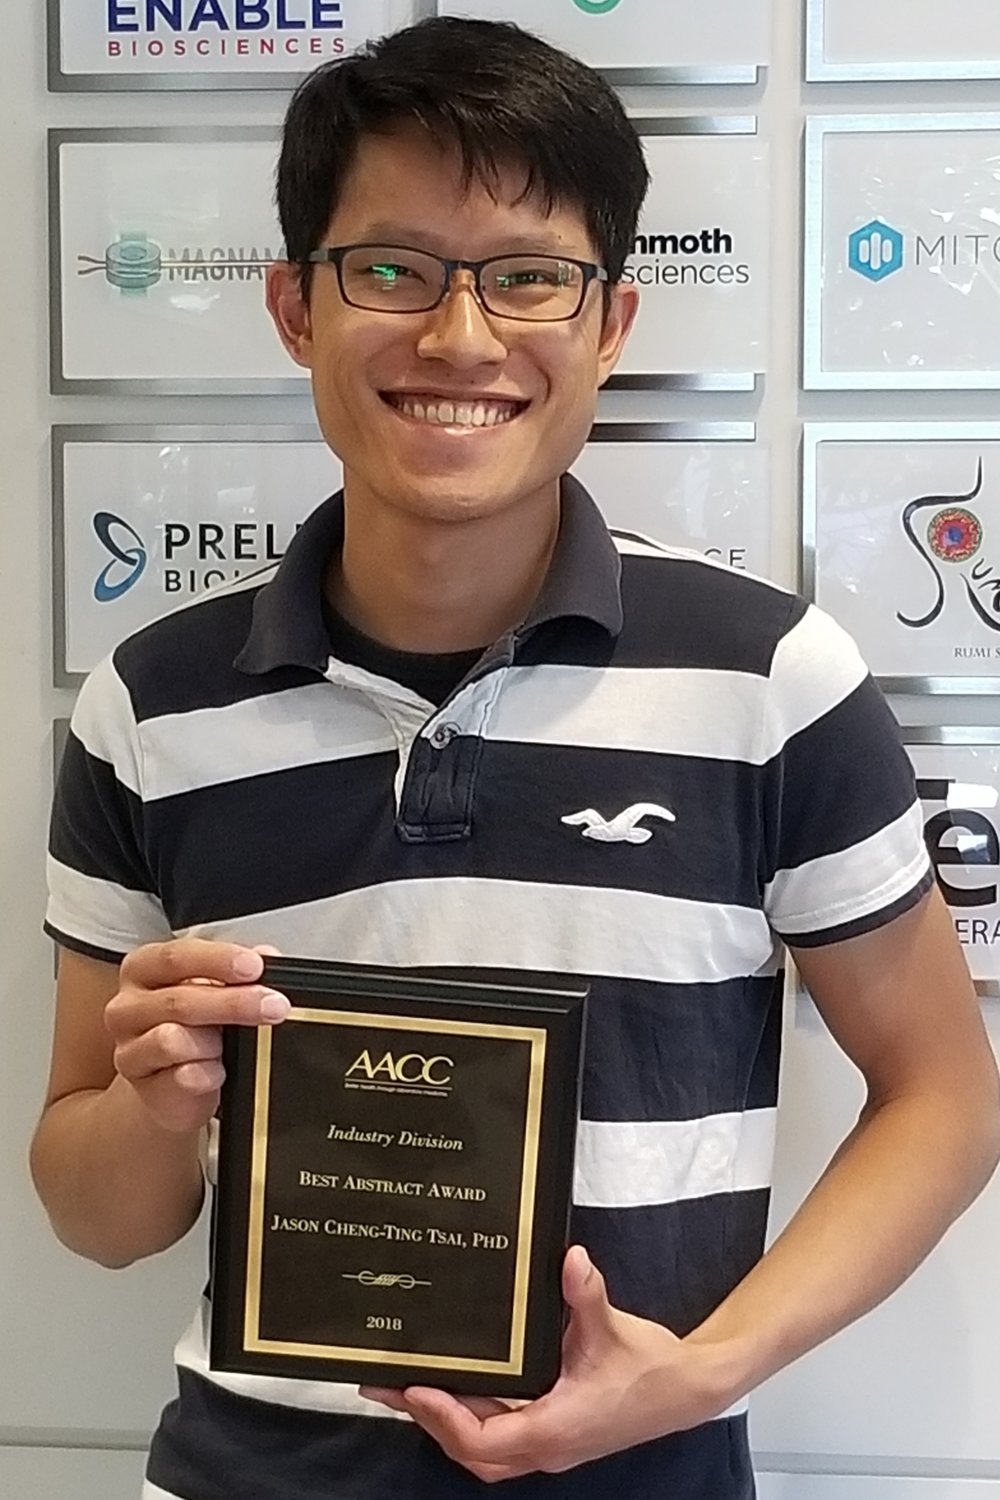 AACC Abstract Award.jpg